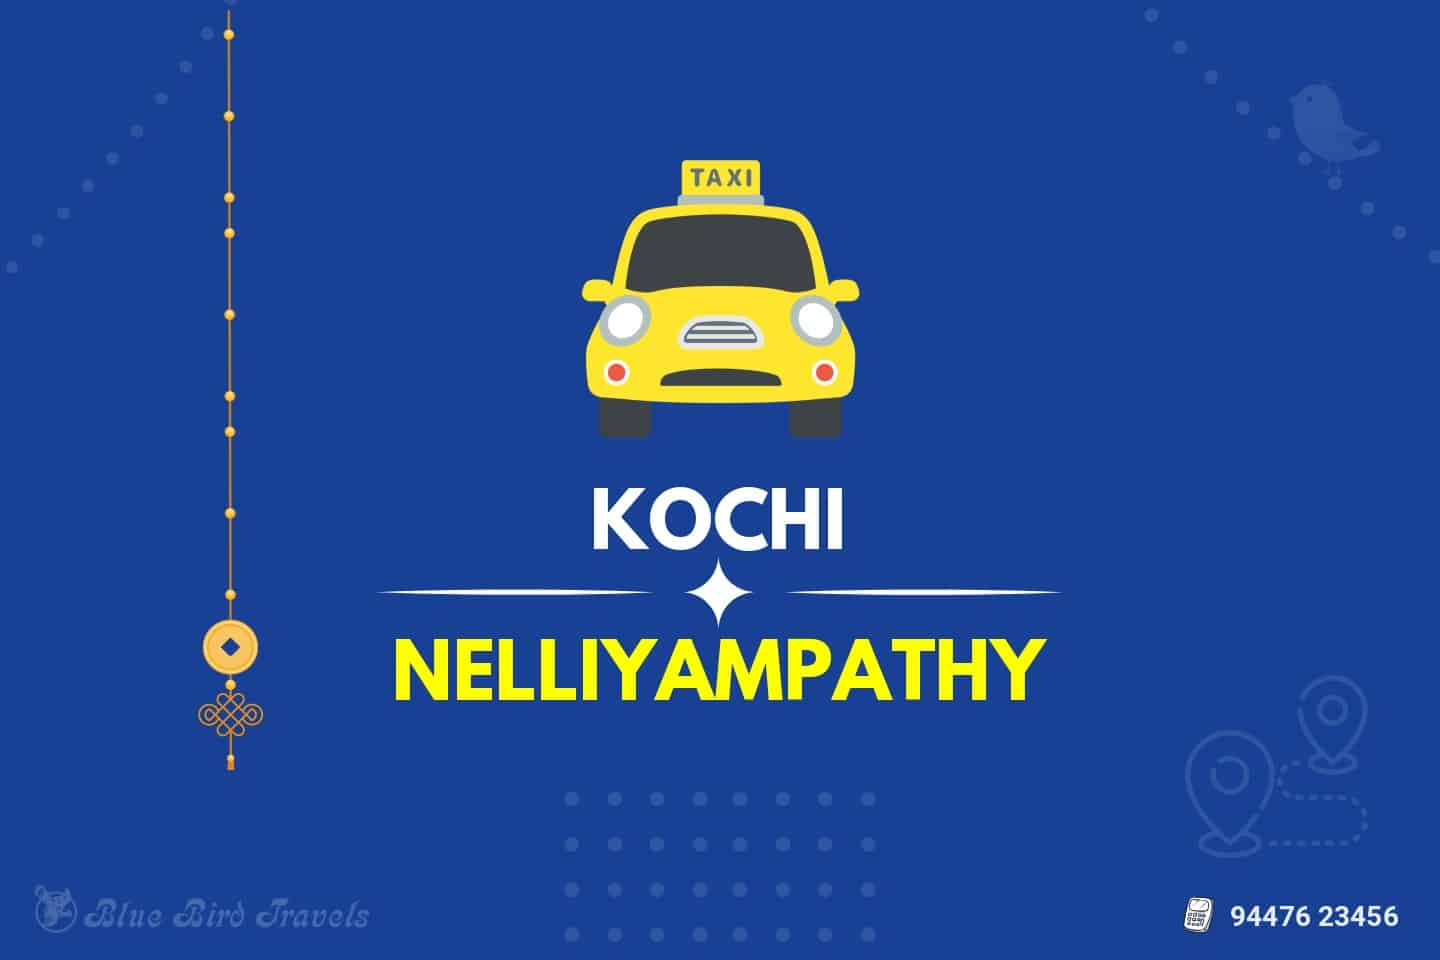 Kochi to Nelliyampathy Taxi(Featured image)